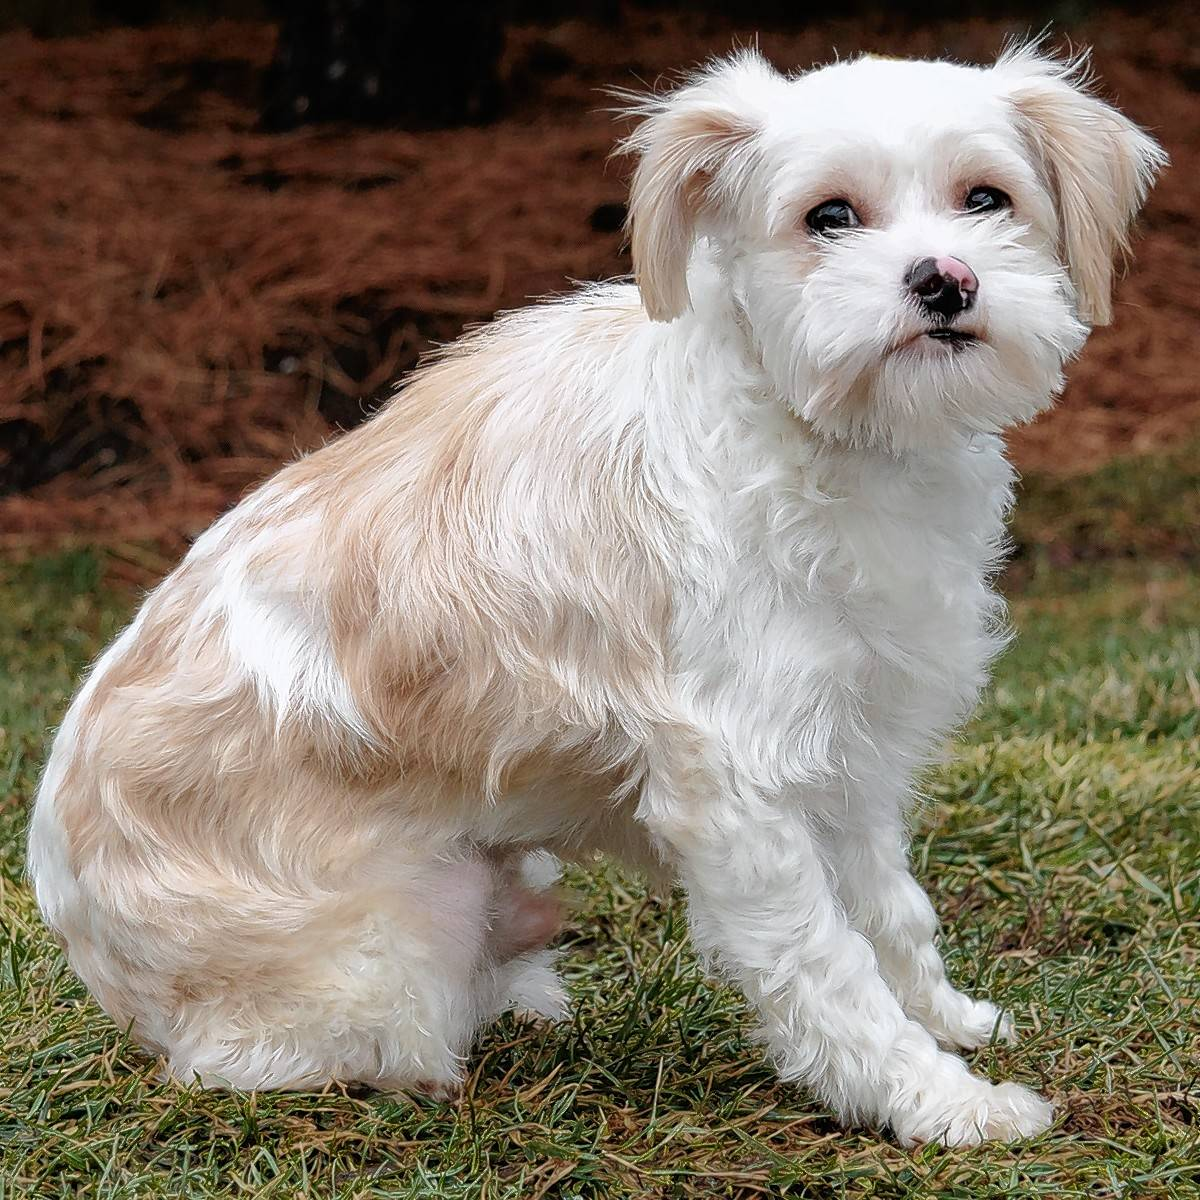 Bently is a male Maltese/Chihuahua/terrier mix, who is 4 months old. This cutie weighs in at 15.6 pounds.